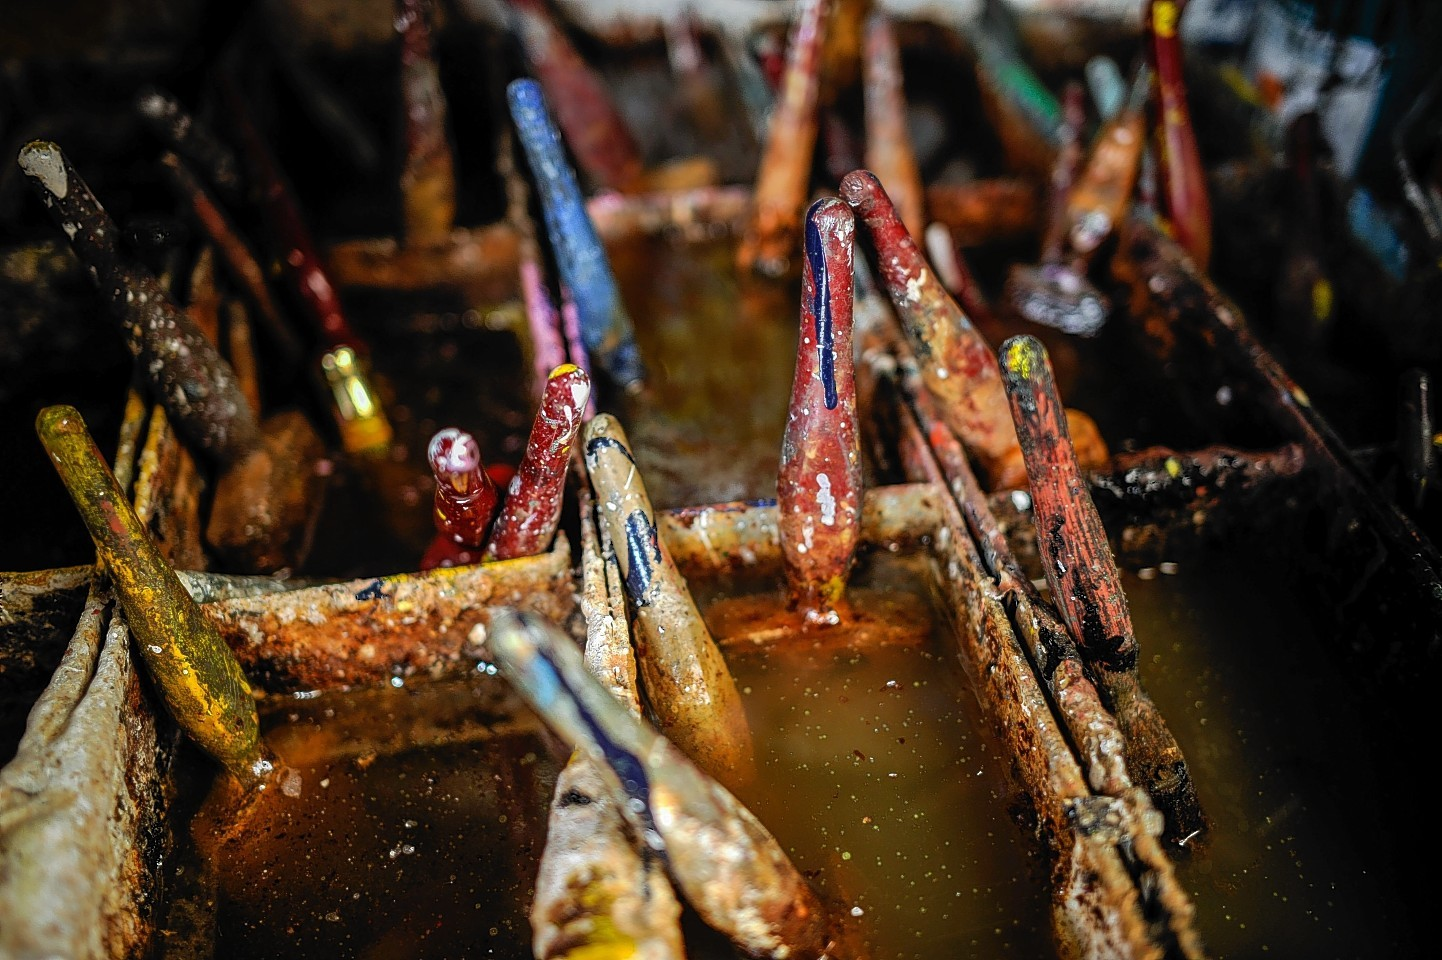 Paint brushes sit in water at the yard